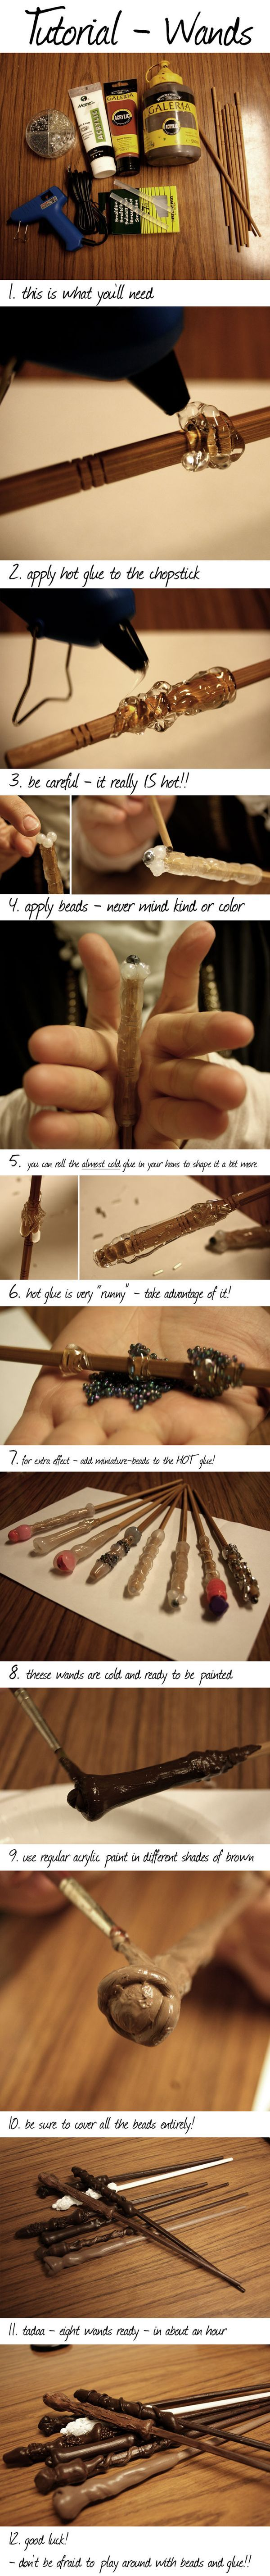 best cose a caso images on pinterest creative ideas good